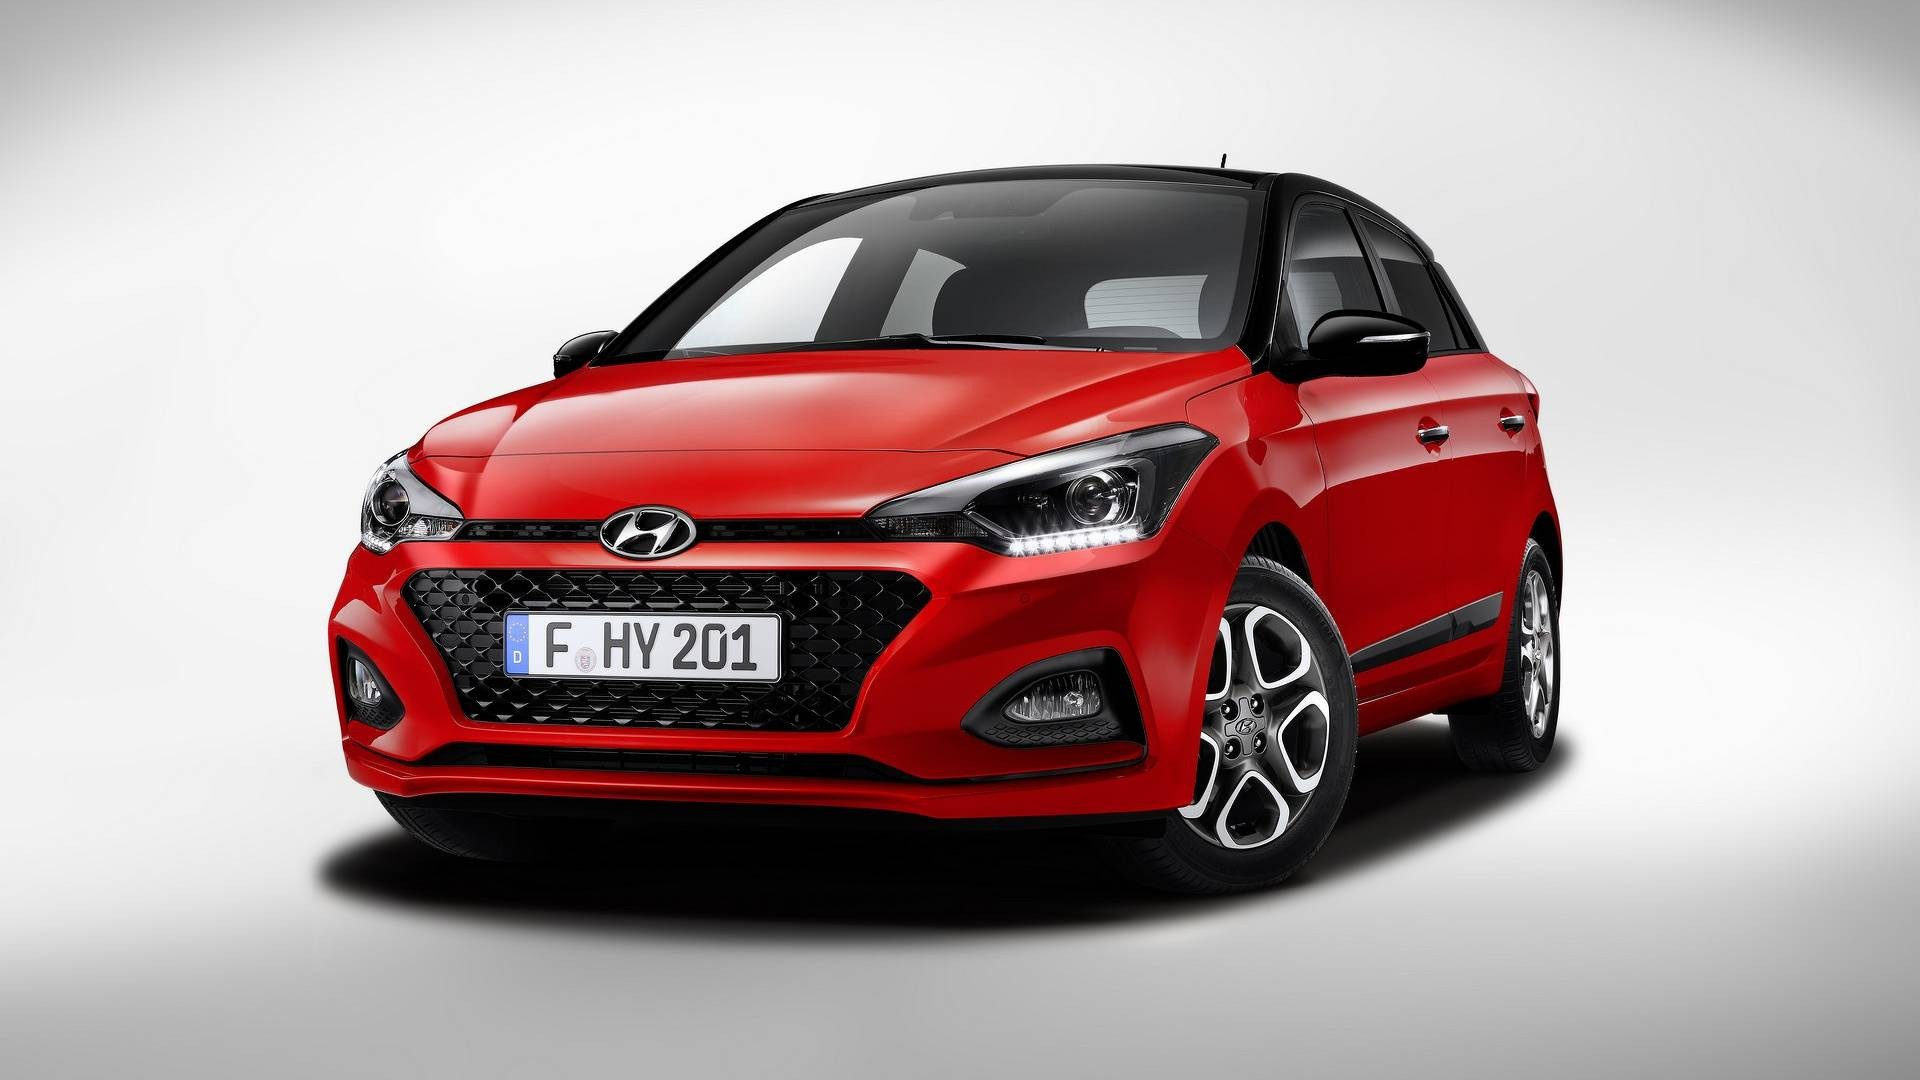 2018 Hyundai i20 Facelift Looks Mundane, Gets Dual-Clutch ...